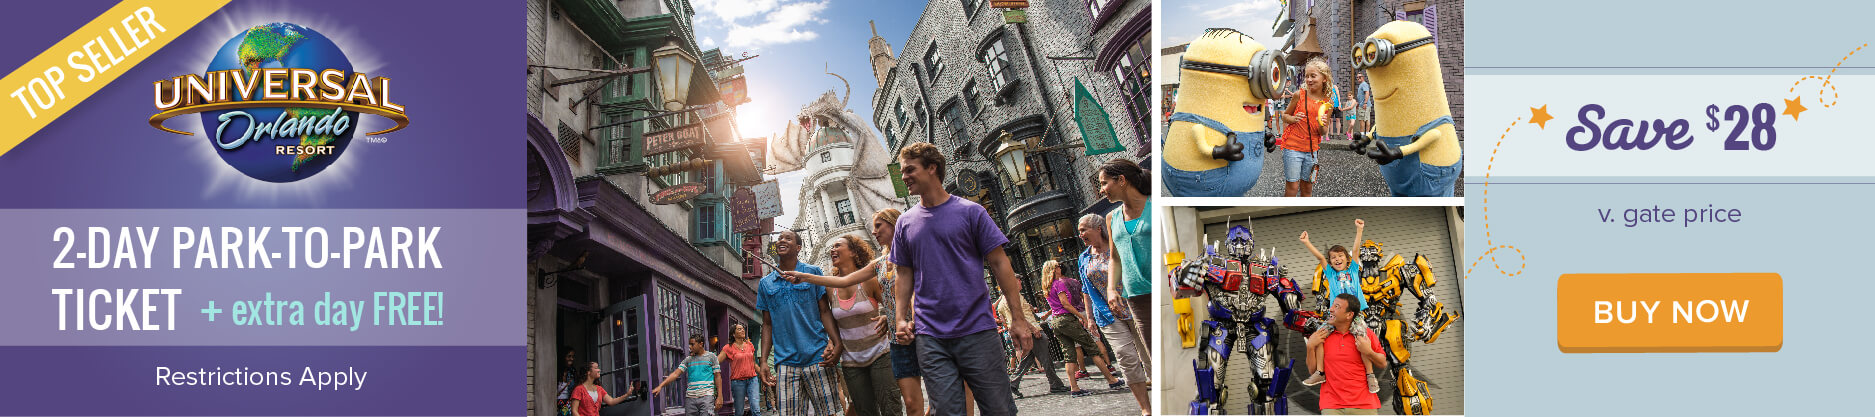 Universal Orlando 2-Day Park-to-Park + Extra Day Free - Save $31!